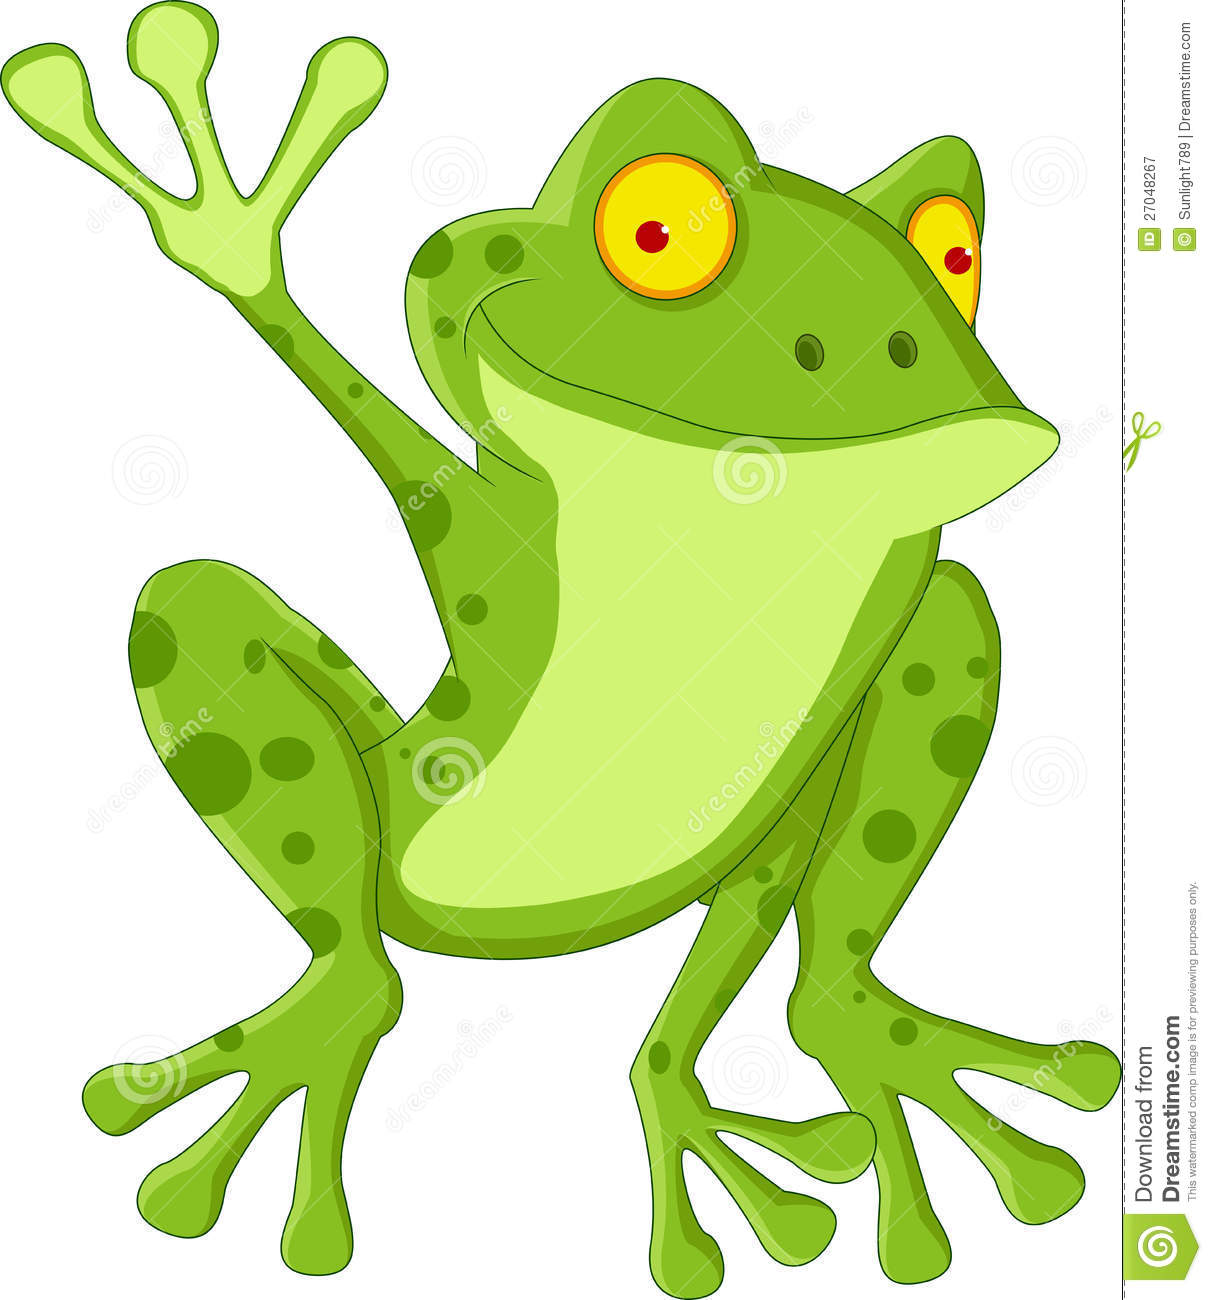 Funny Animated Frogs | www.pixshark.com - Images Galleries ...